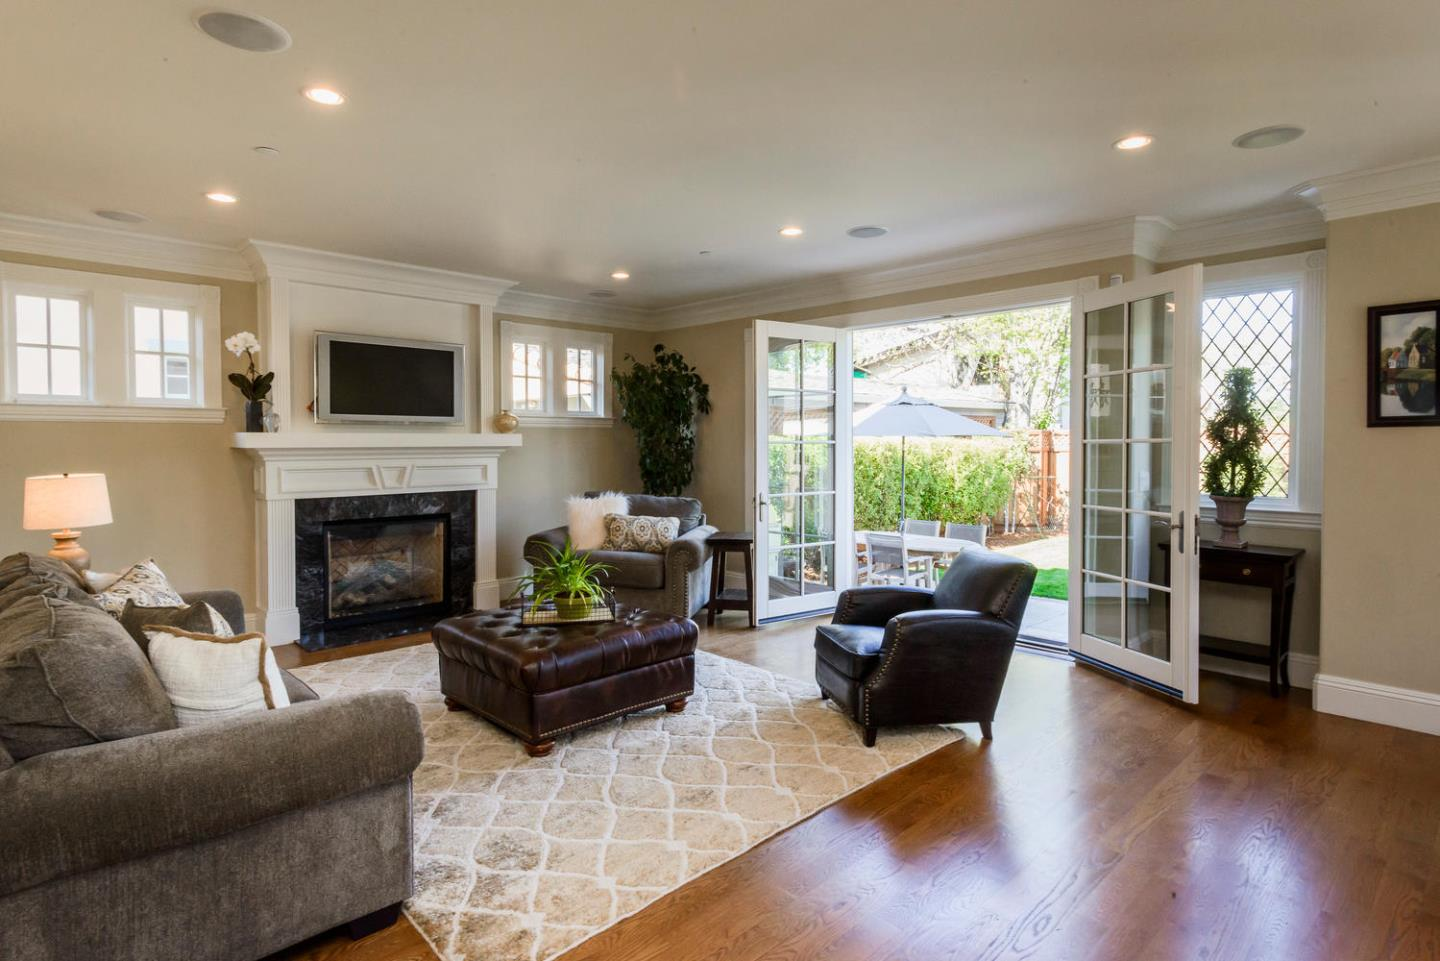 Additional photo for property listing at 1516 Vancouver Ave  BURLINGAME, CALIFORNIA 94010